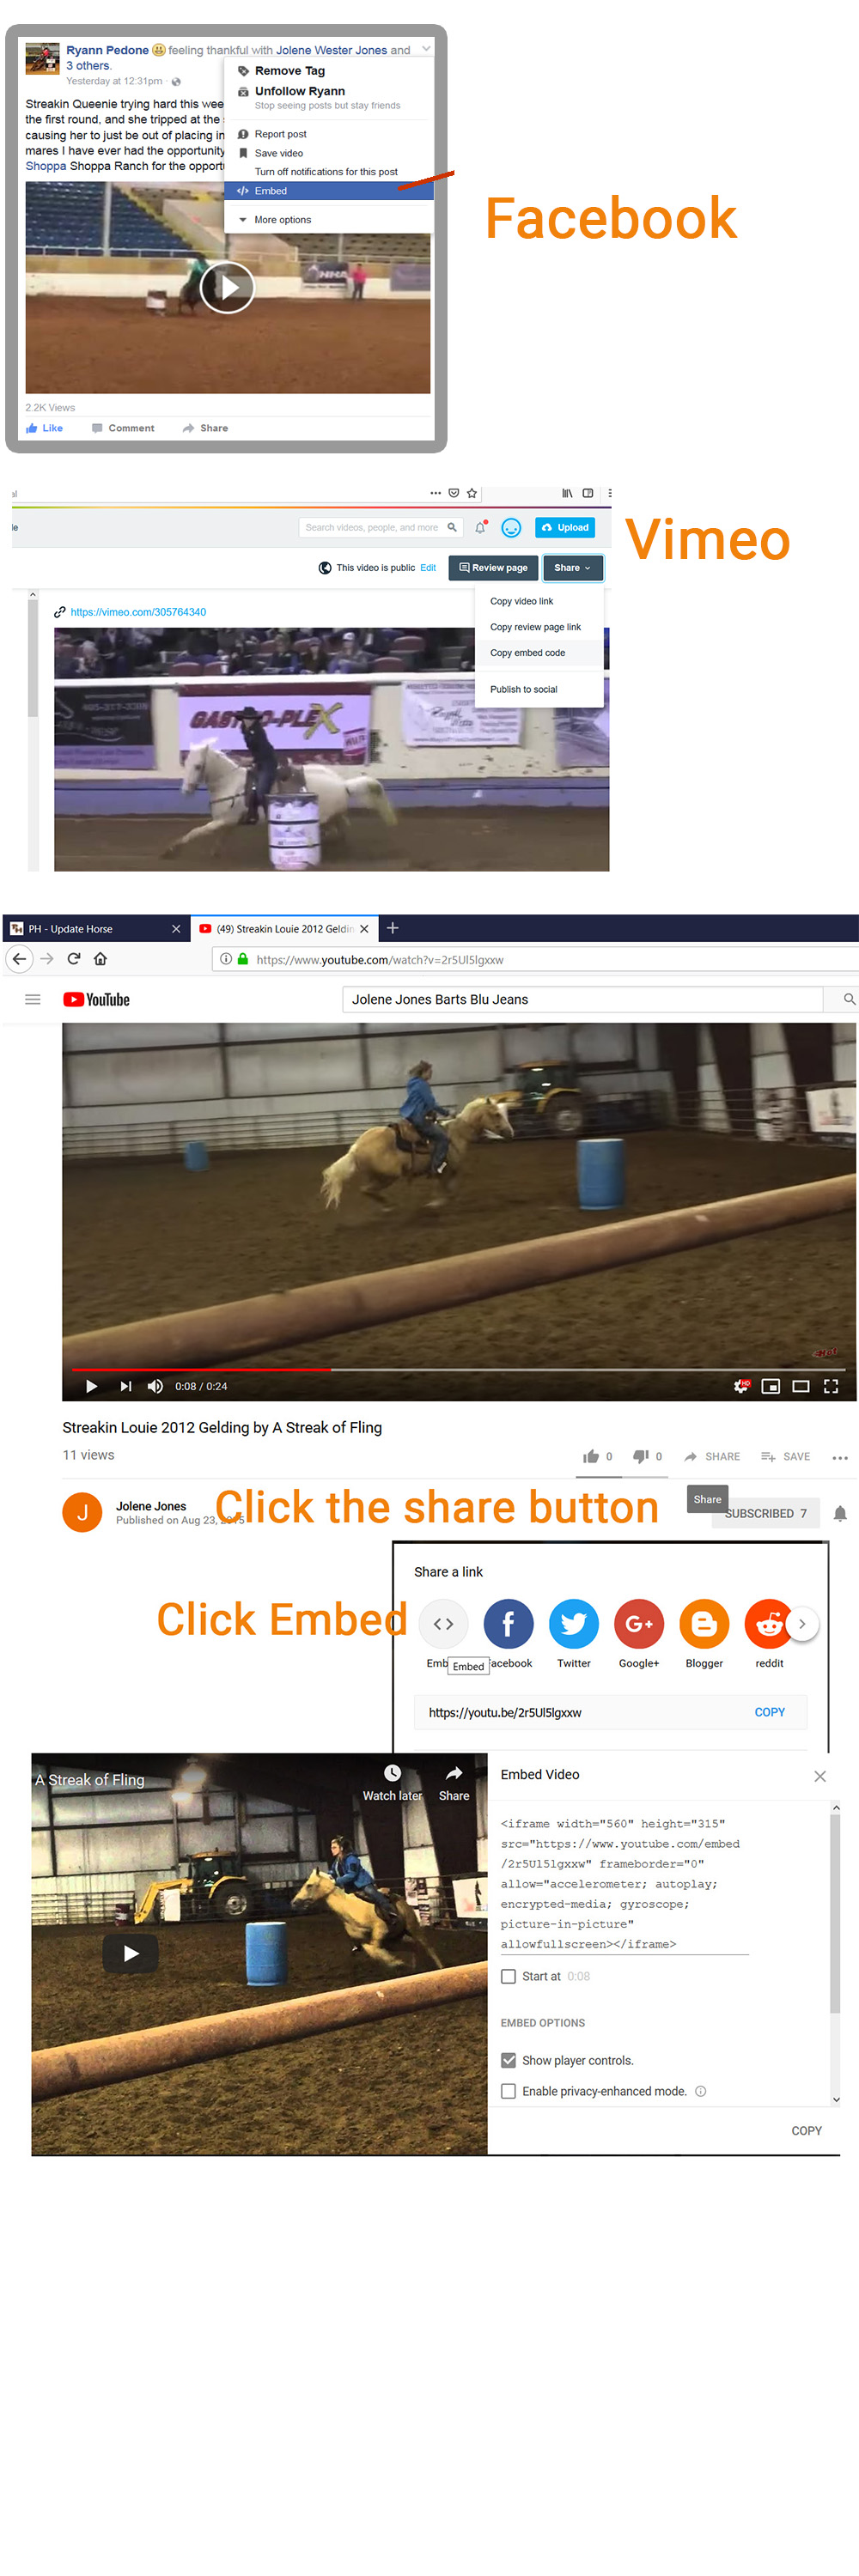 How to get the embed code for your horse profiles, horse posts and posts.